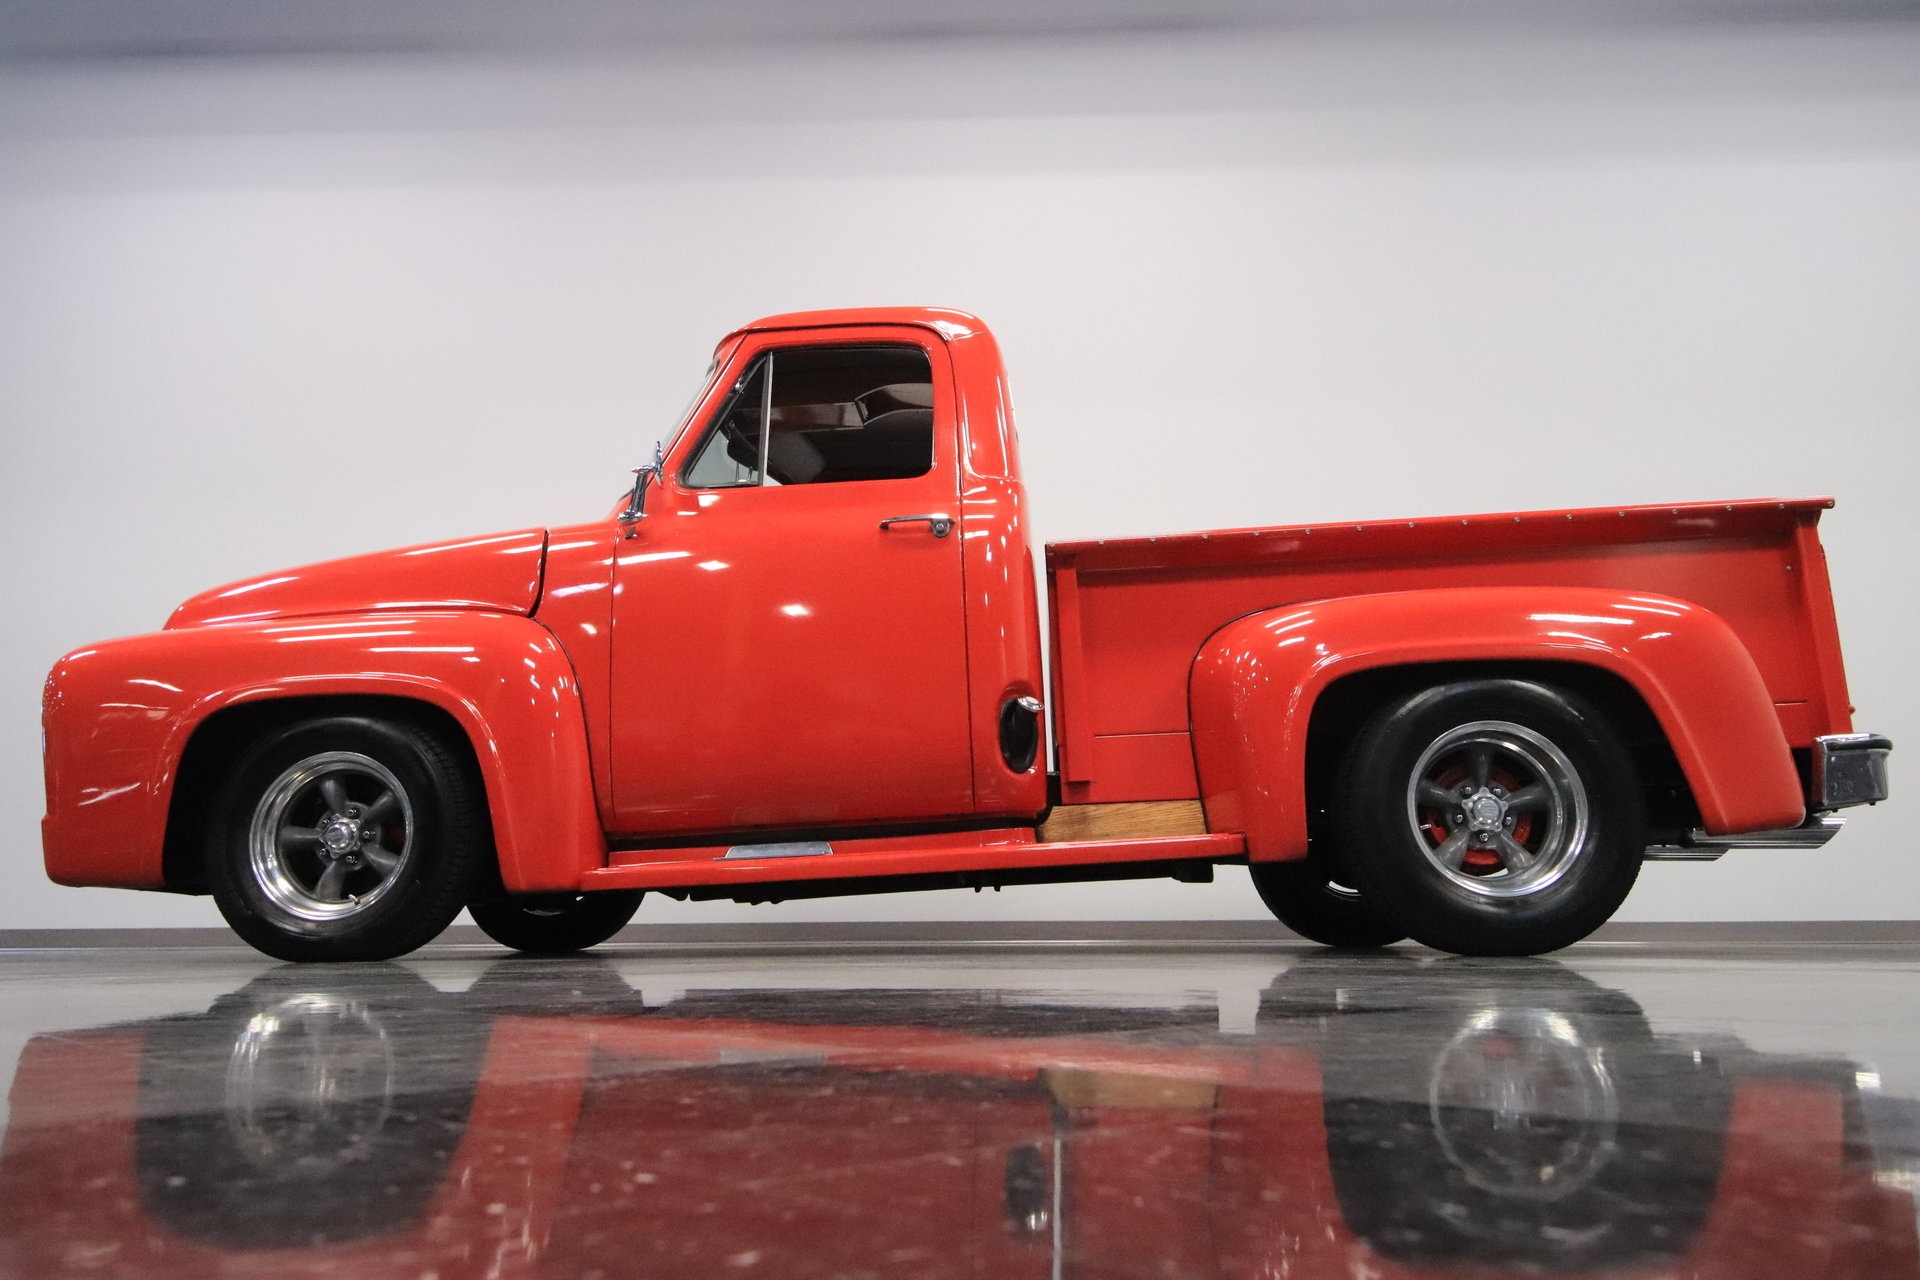 1955 Ford F 100 Streetside Classics The Nations Trusted Classic F100 On 20 Inch Wheels View 360